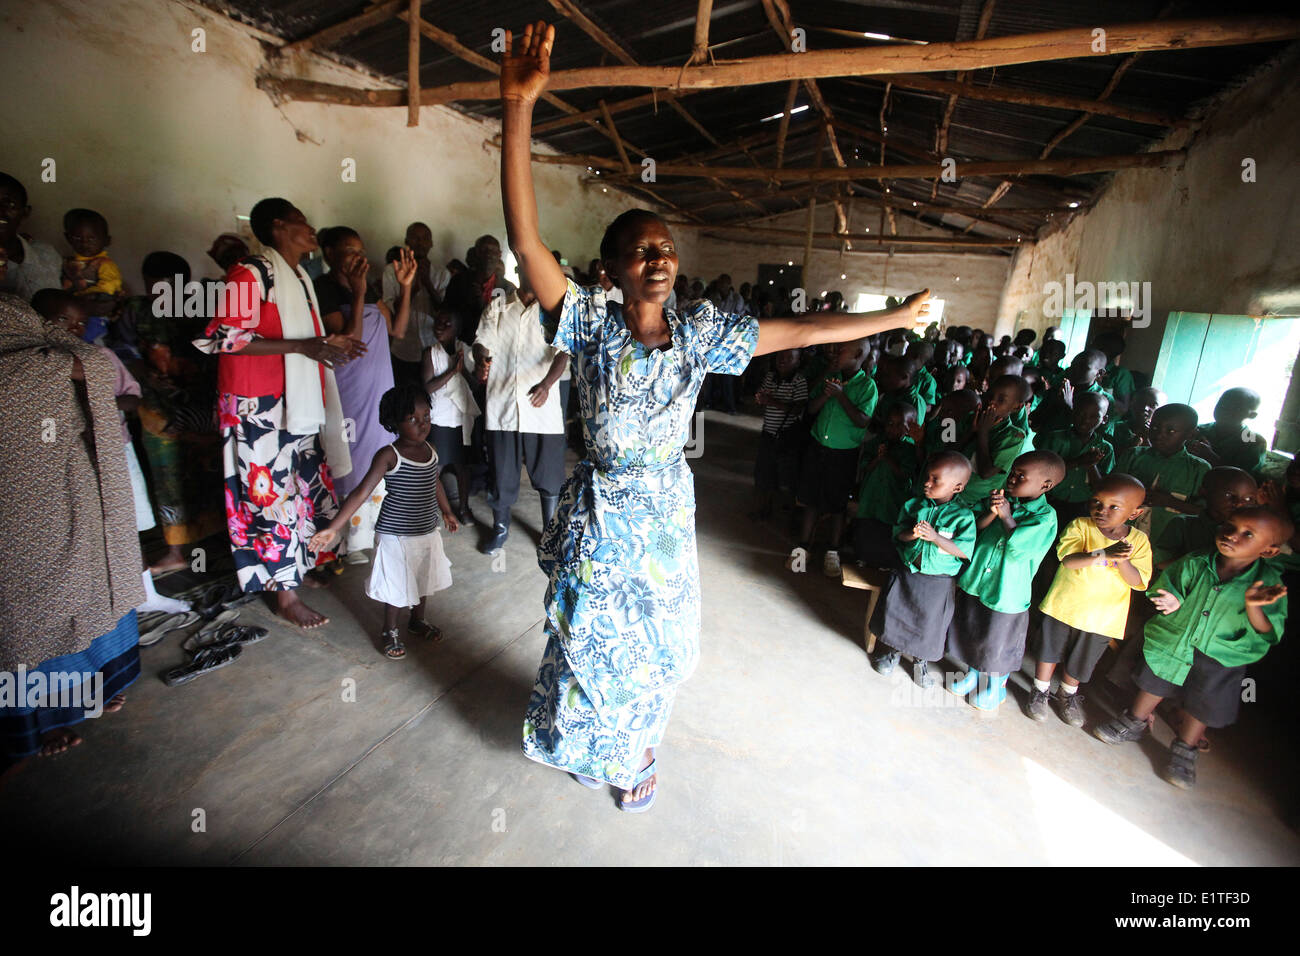 Villagers and school children dance at a NGO funded school in the Nyagatare district of Rwanda - Stock Image